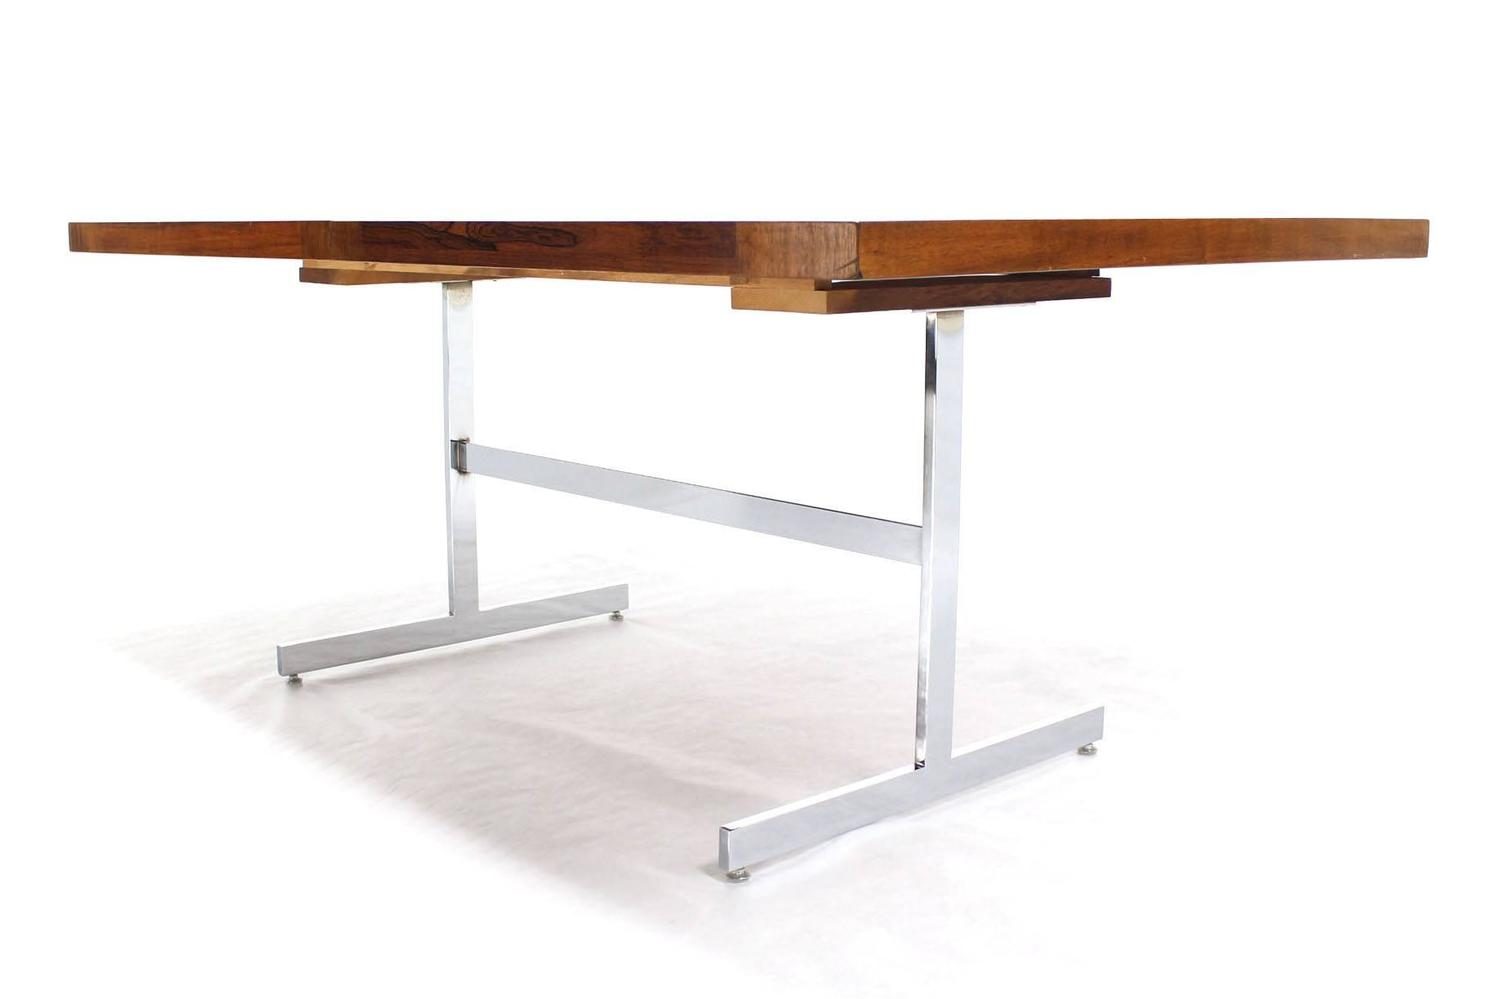 chrome base walnut and rosewood top dining table with two leaves for sale at 1stdibs. Black Bedroom Furniture Sets. Home Design Ideas